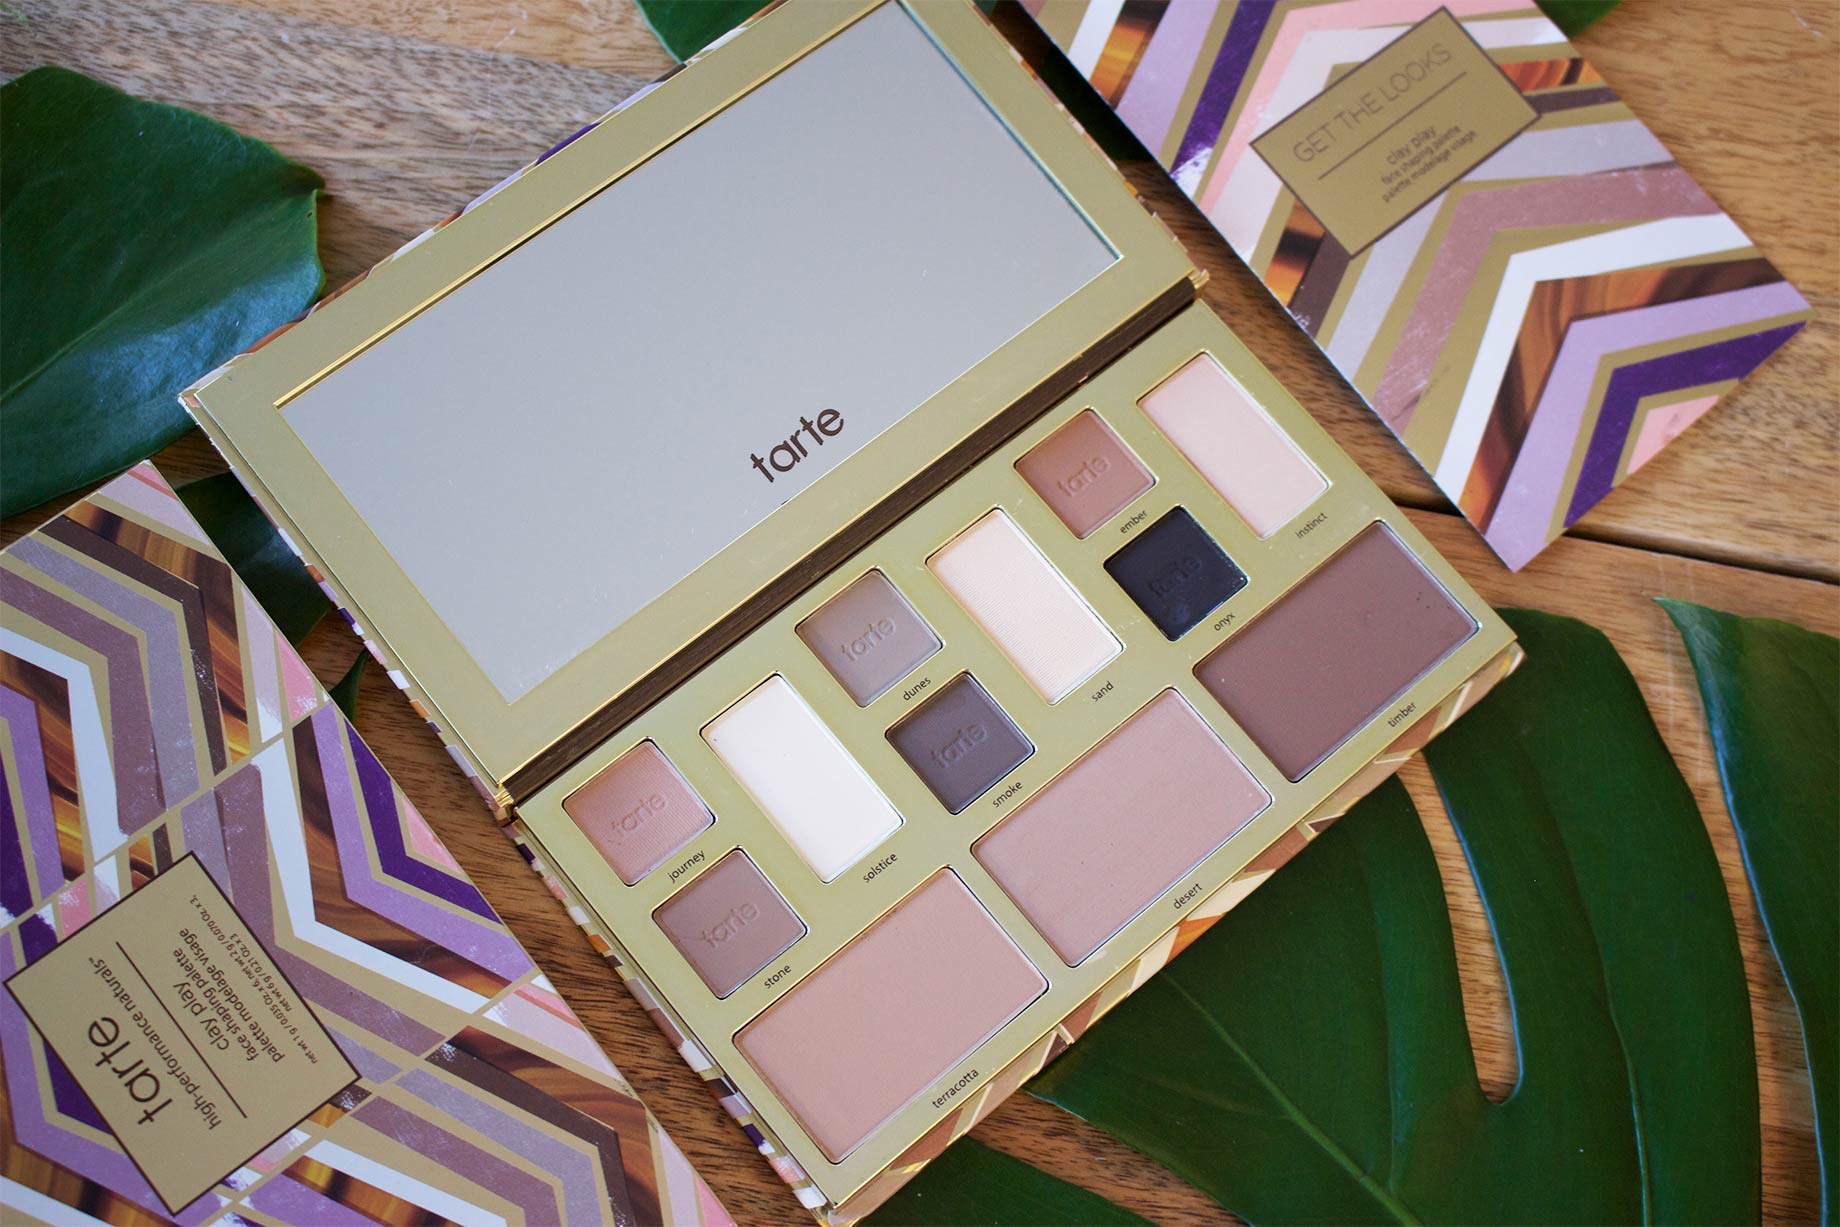 Clay Play Face Shaping Palette - Volume II by Tarte #19